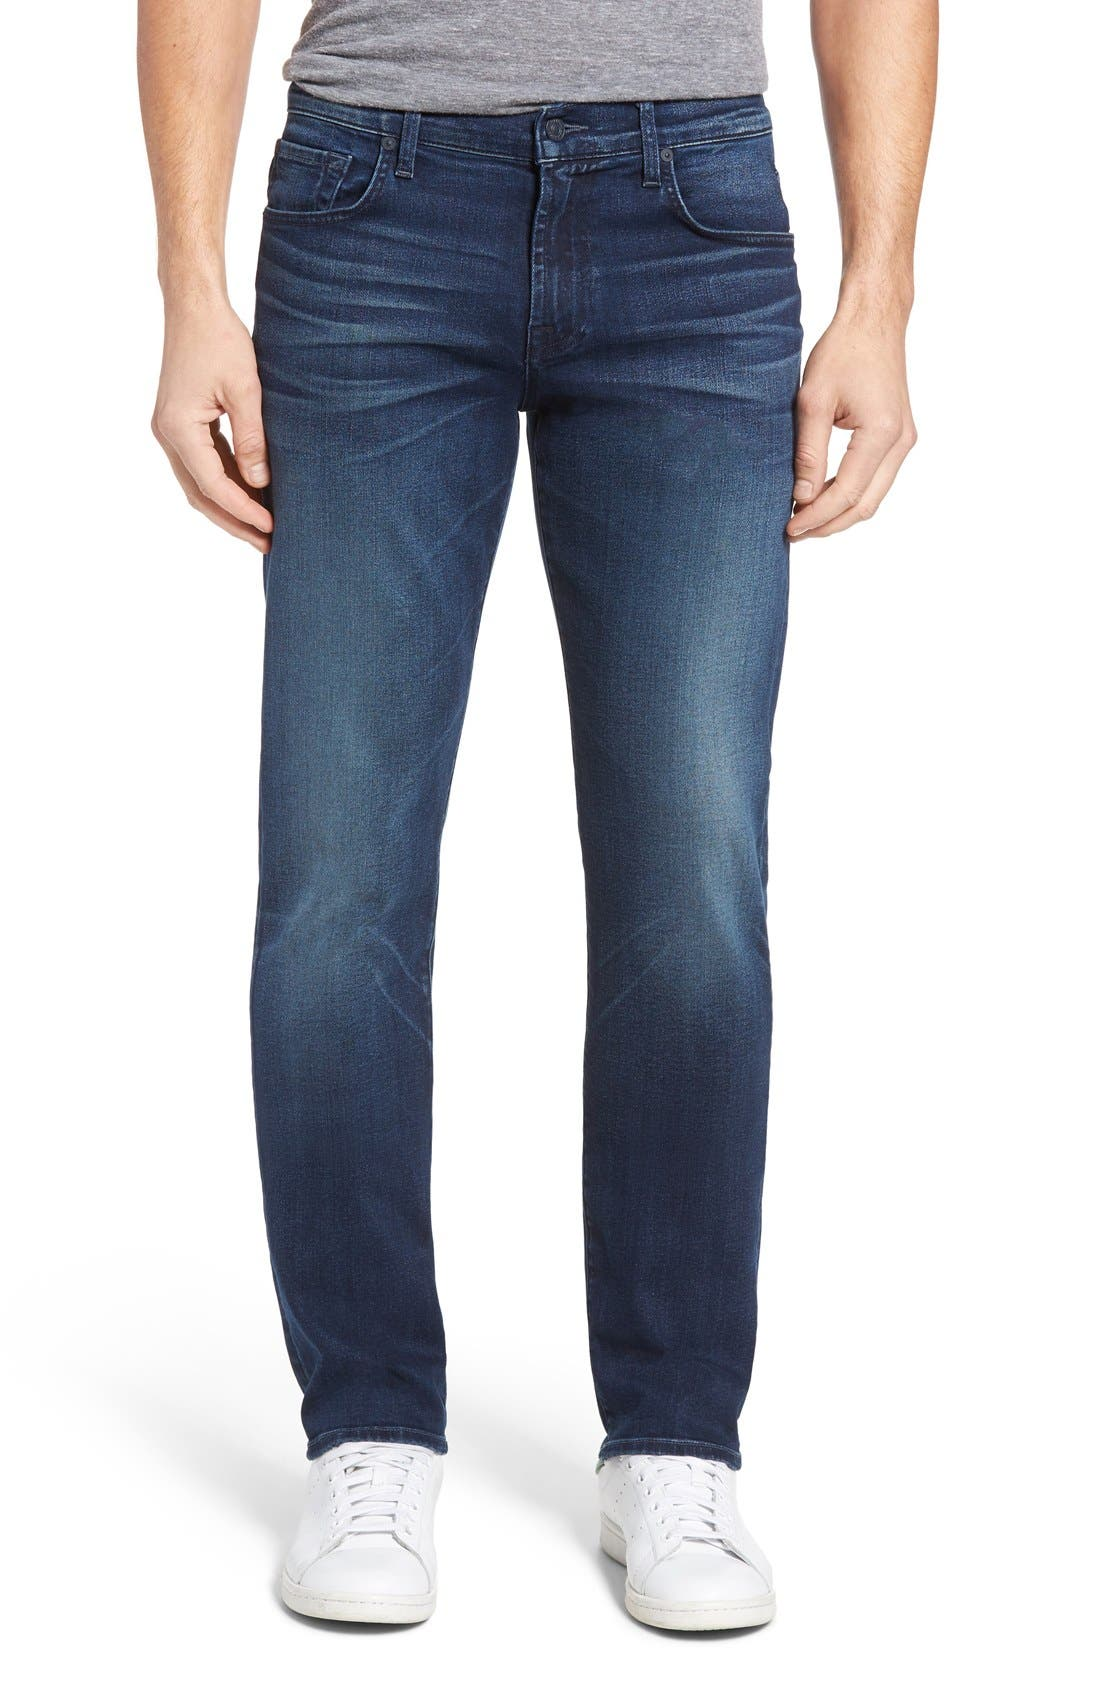 Slimmy Luxe Performance Slim Fit Jeans,                         Main,                         color, 402